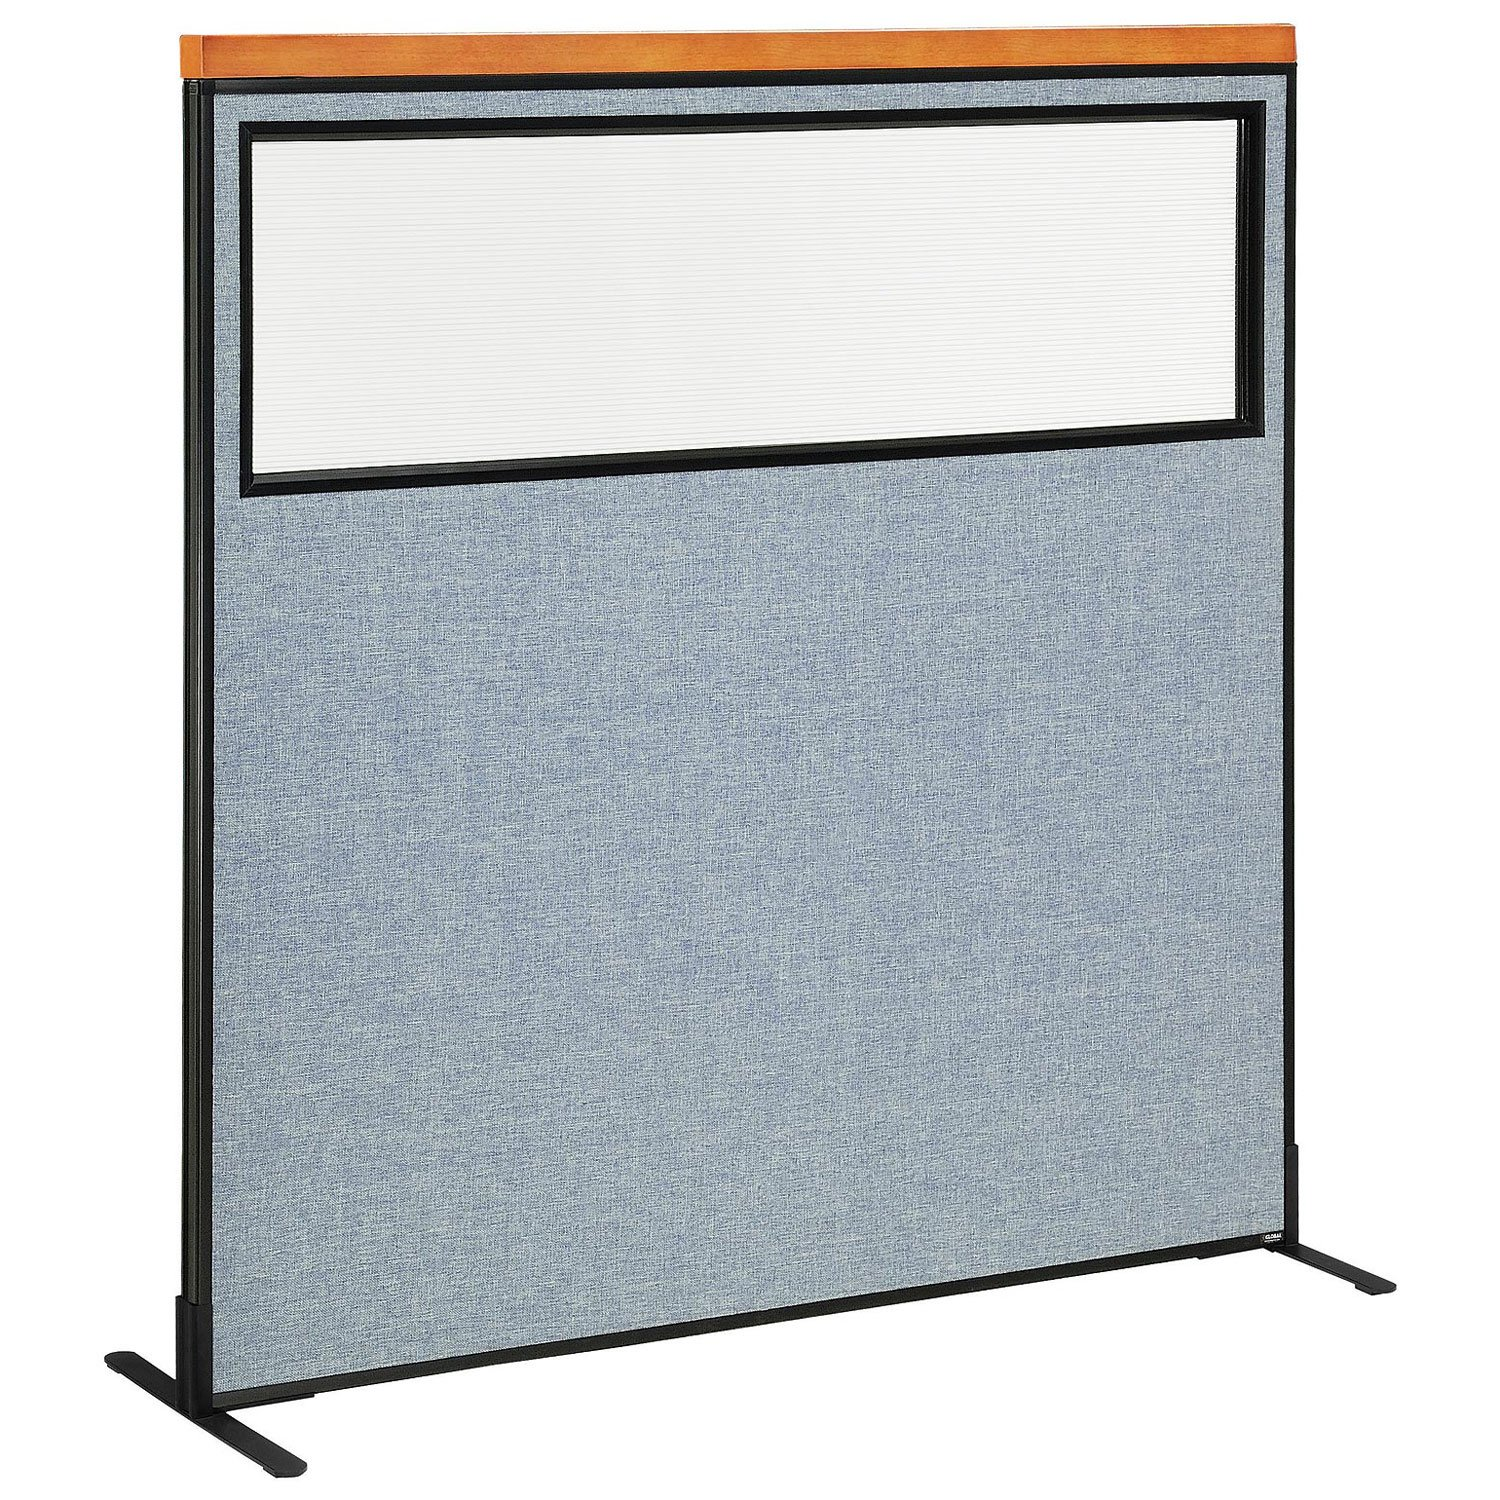 60-1/4''W x 61-1/2''H Deluxe Freestanding Office Partition Panel with Partial Window, Blue